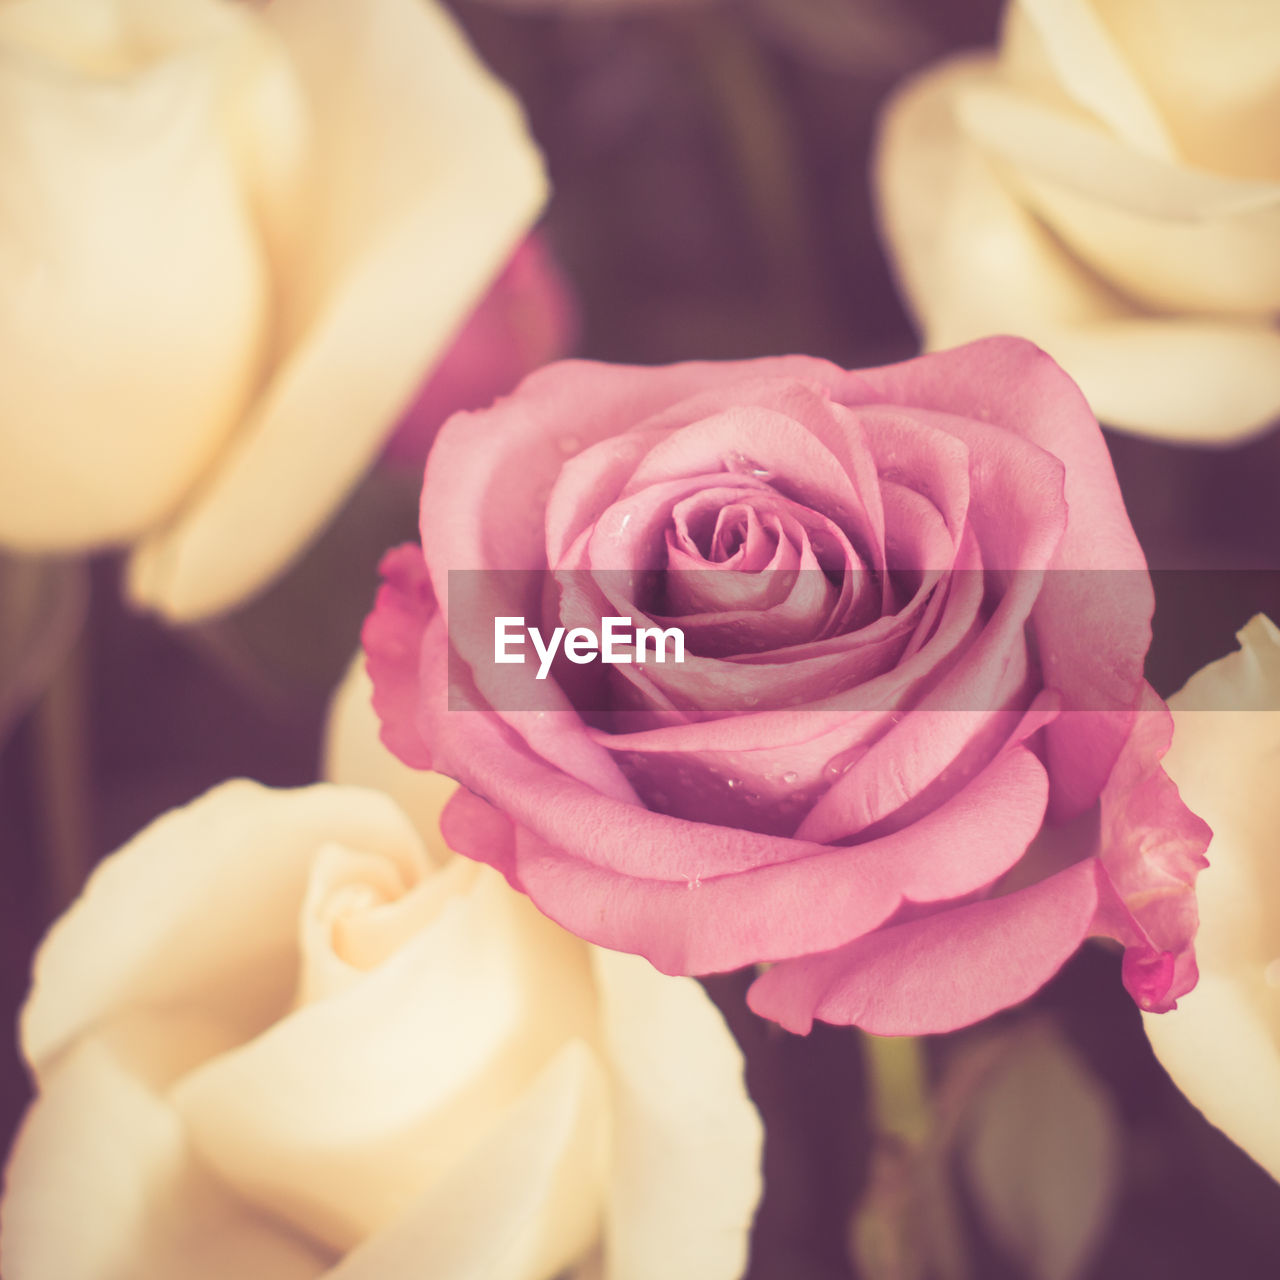 flower, flowering plant, beauty in nature, rose, freshness, plant, rose - flower, petal, inflorescence, close-up, flower head, vulnerability, fragility, nature, pink color, no people, focus on foreground, selective focus, indoors, growth, flower arrangement, bouquet